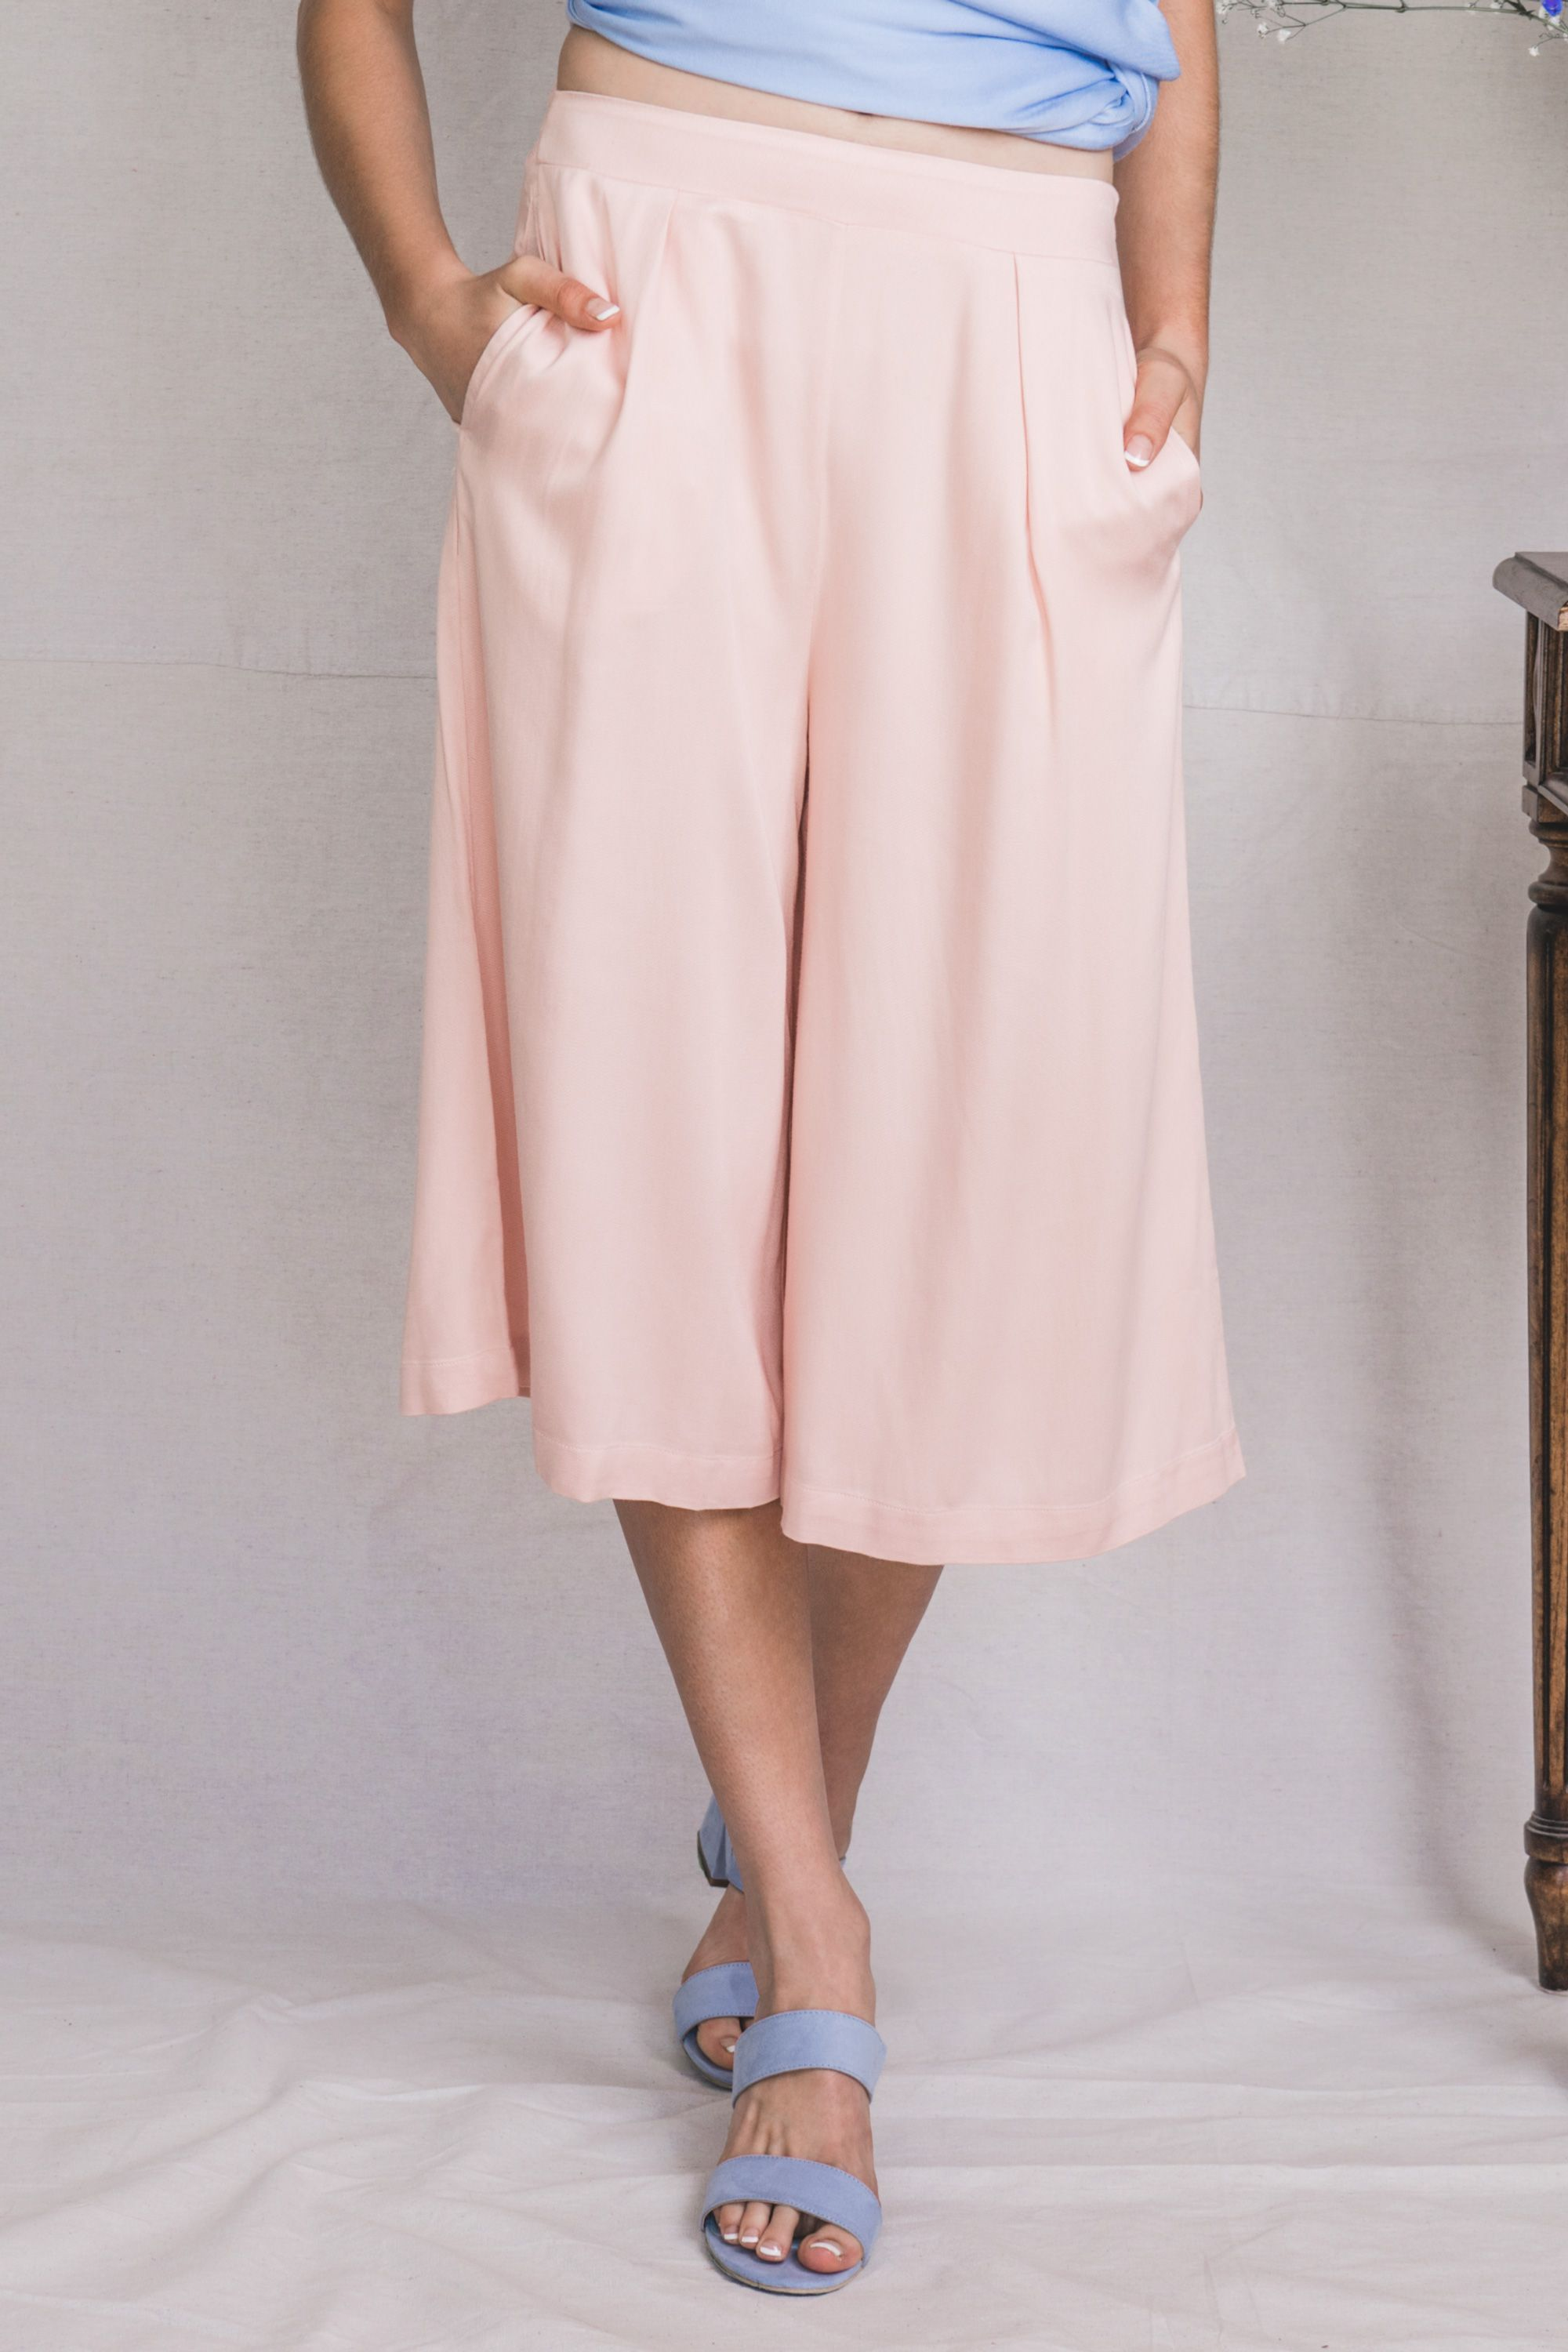 TGB EcoFashion Shop Vela Bamboo Culottes in Rose Quartz Shop here: http://the-great-beyond.com/product/vela-bamboo-culottes-quartz/ | Free Shipping WorldWide Bamboo Clothing